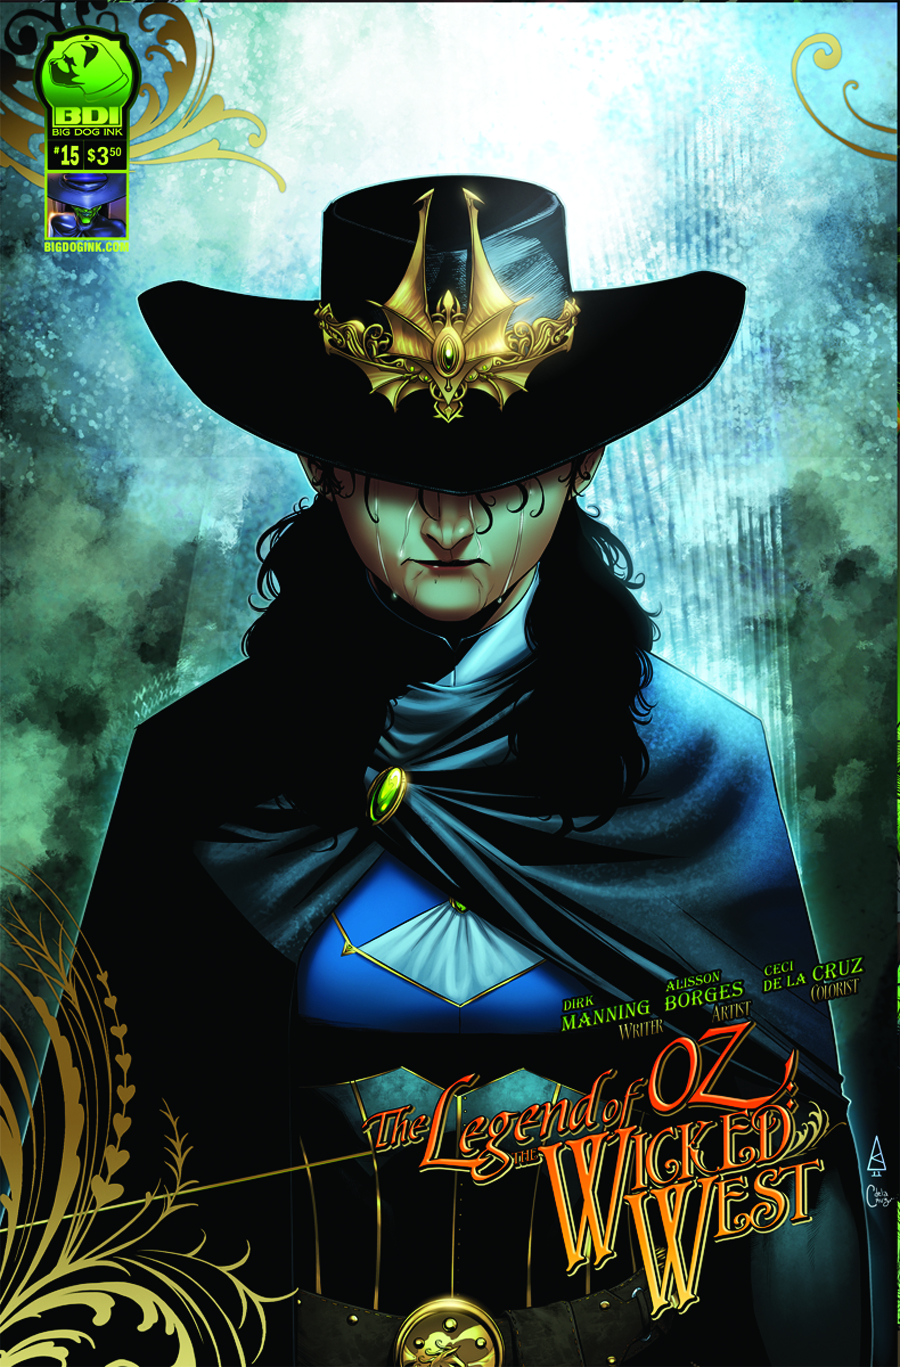 LEGEND OF OZ THE WICKED WEST ONGOING #15